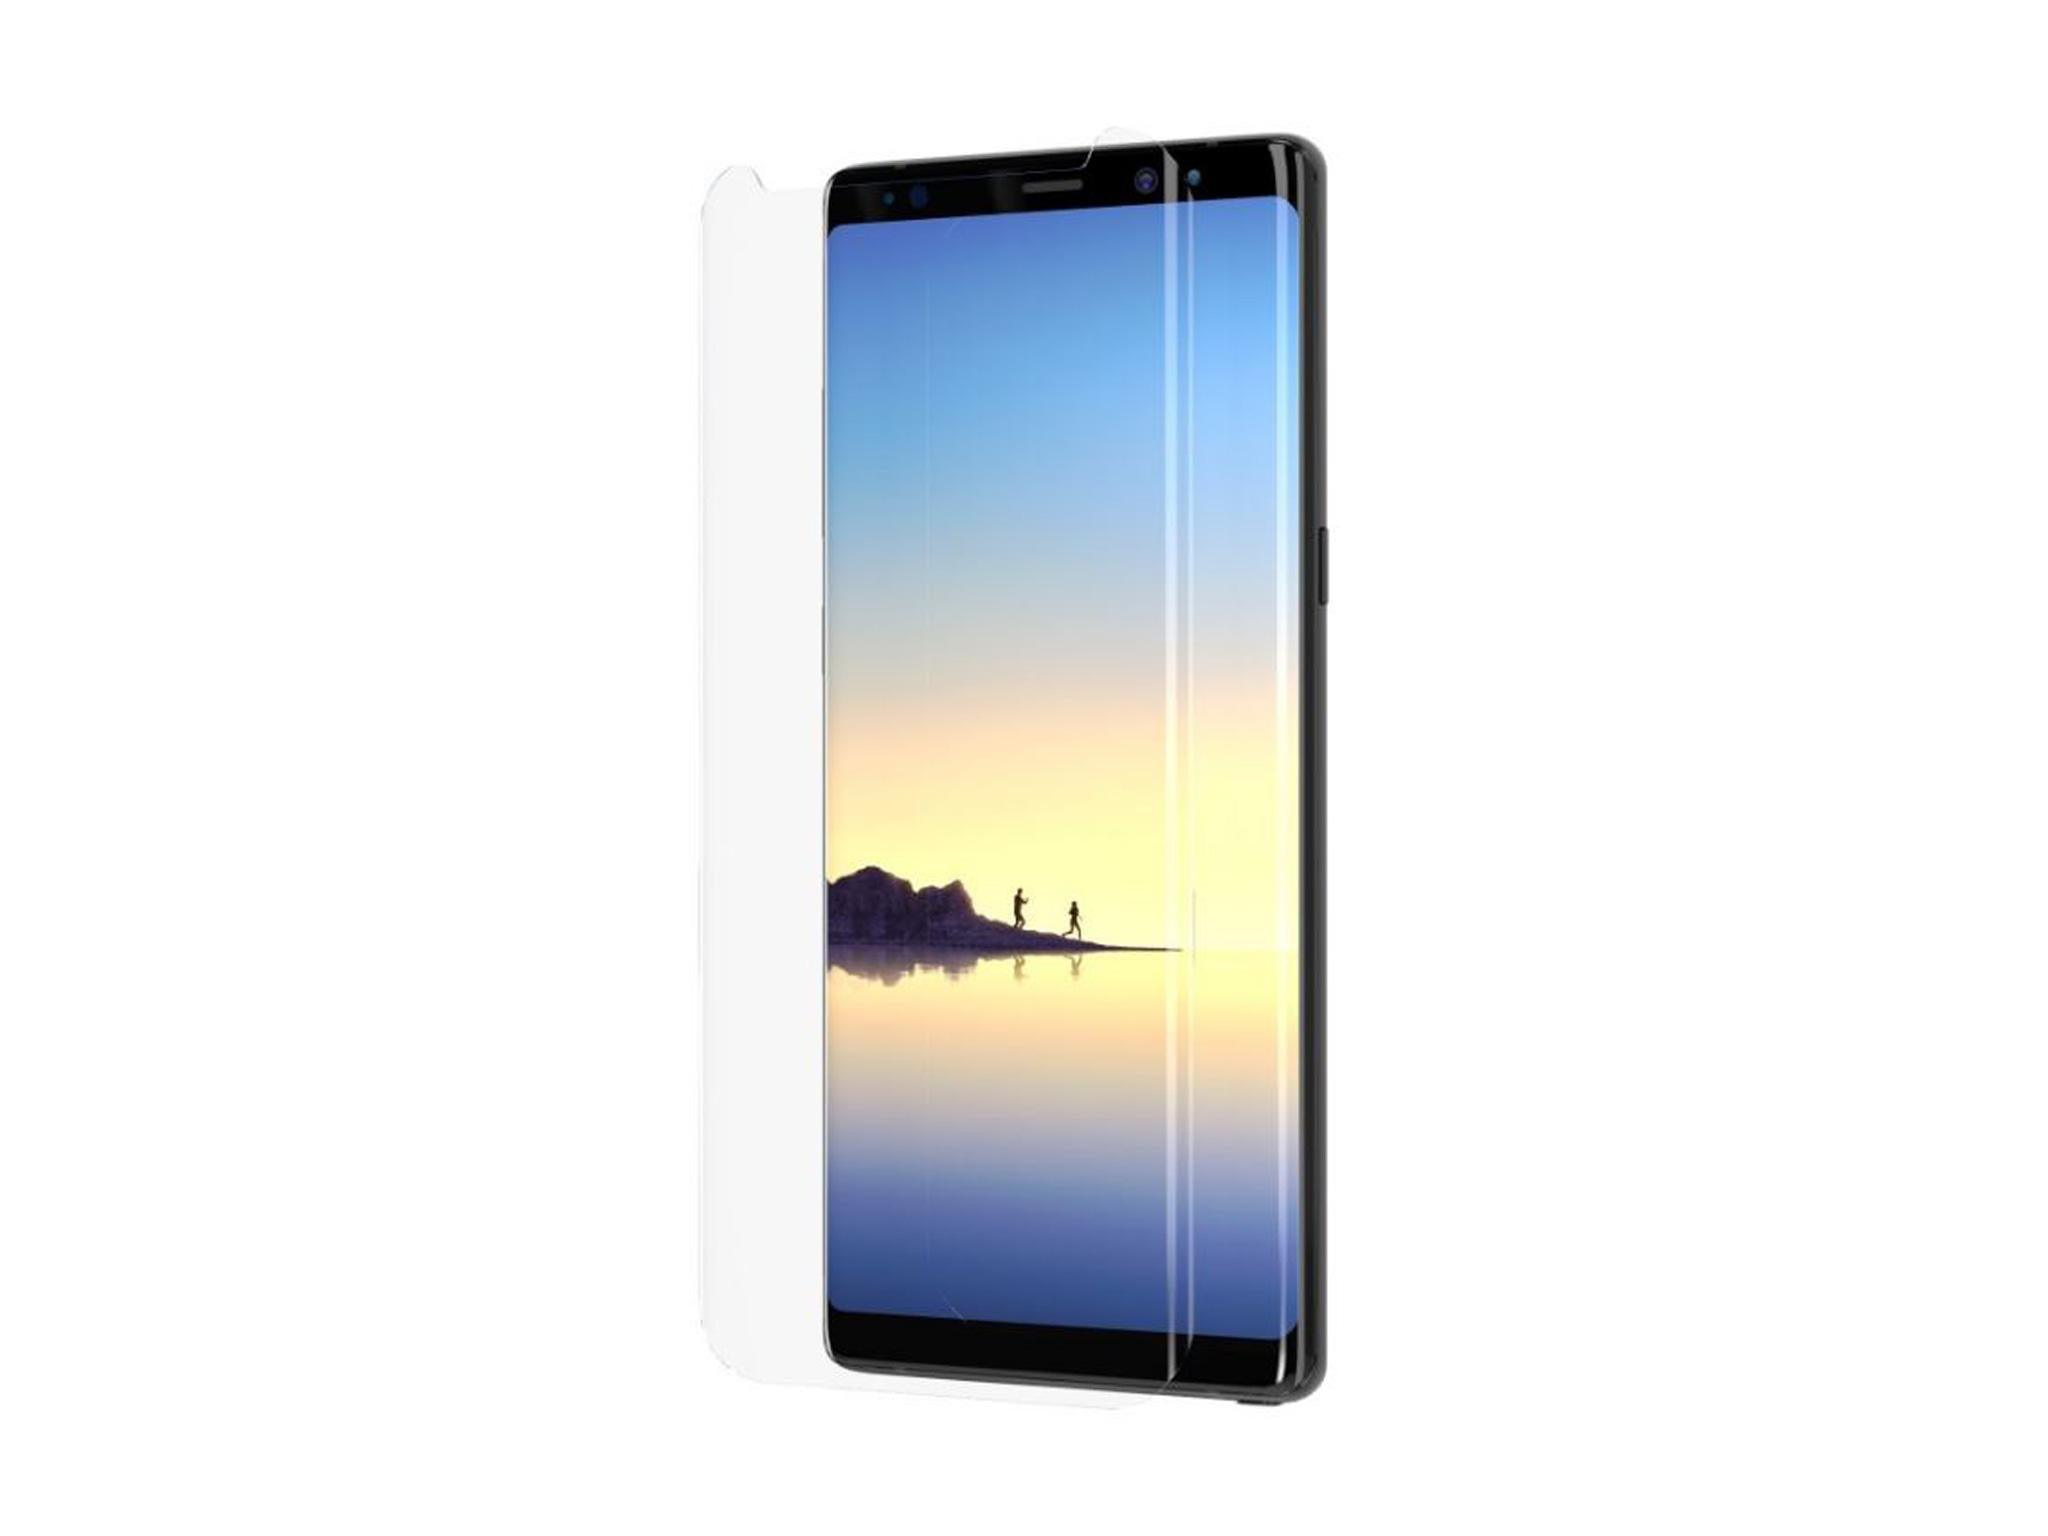 10 best Samsung Galaxy Note 8 cases | The Independent